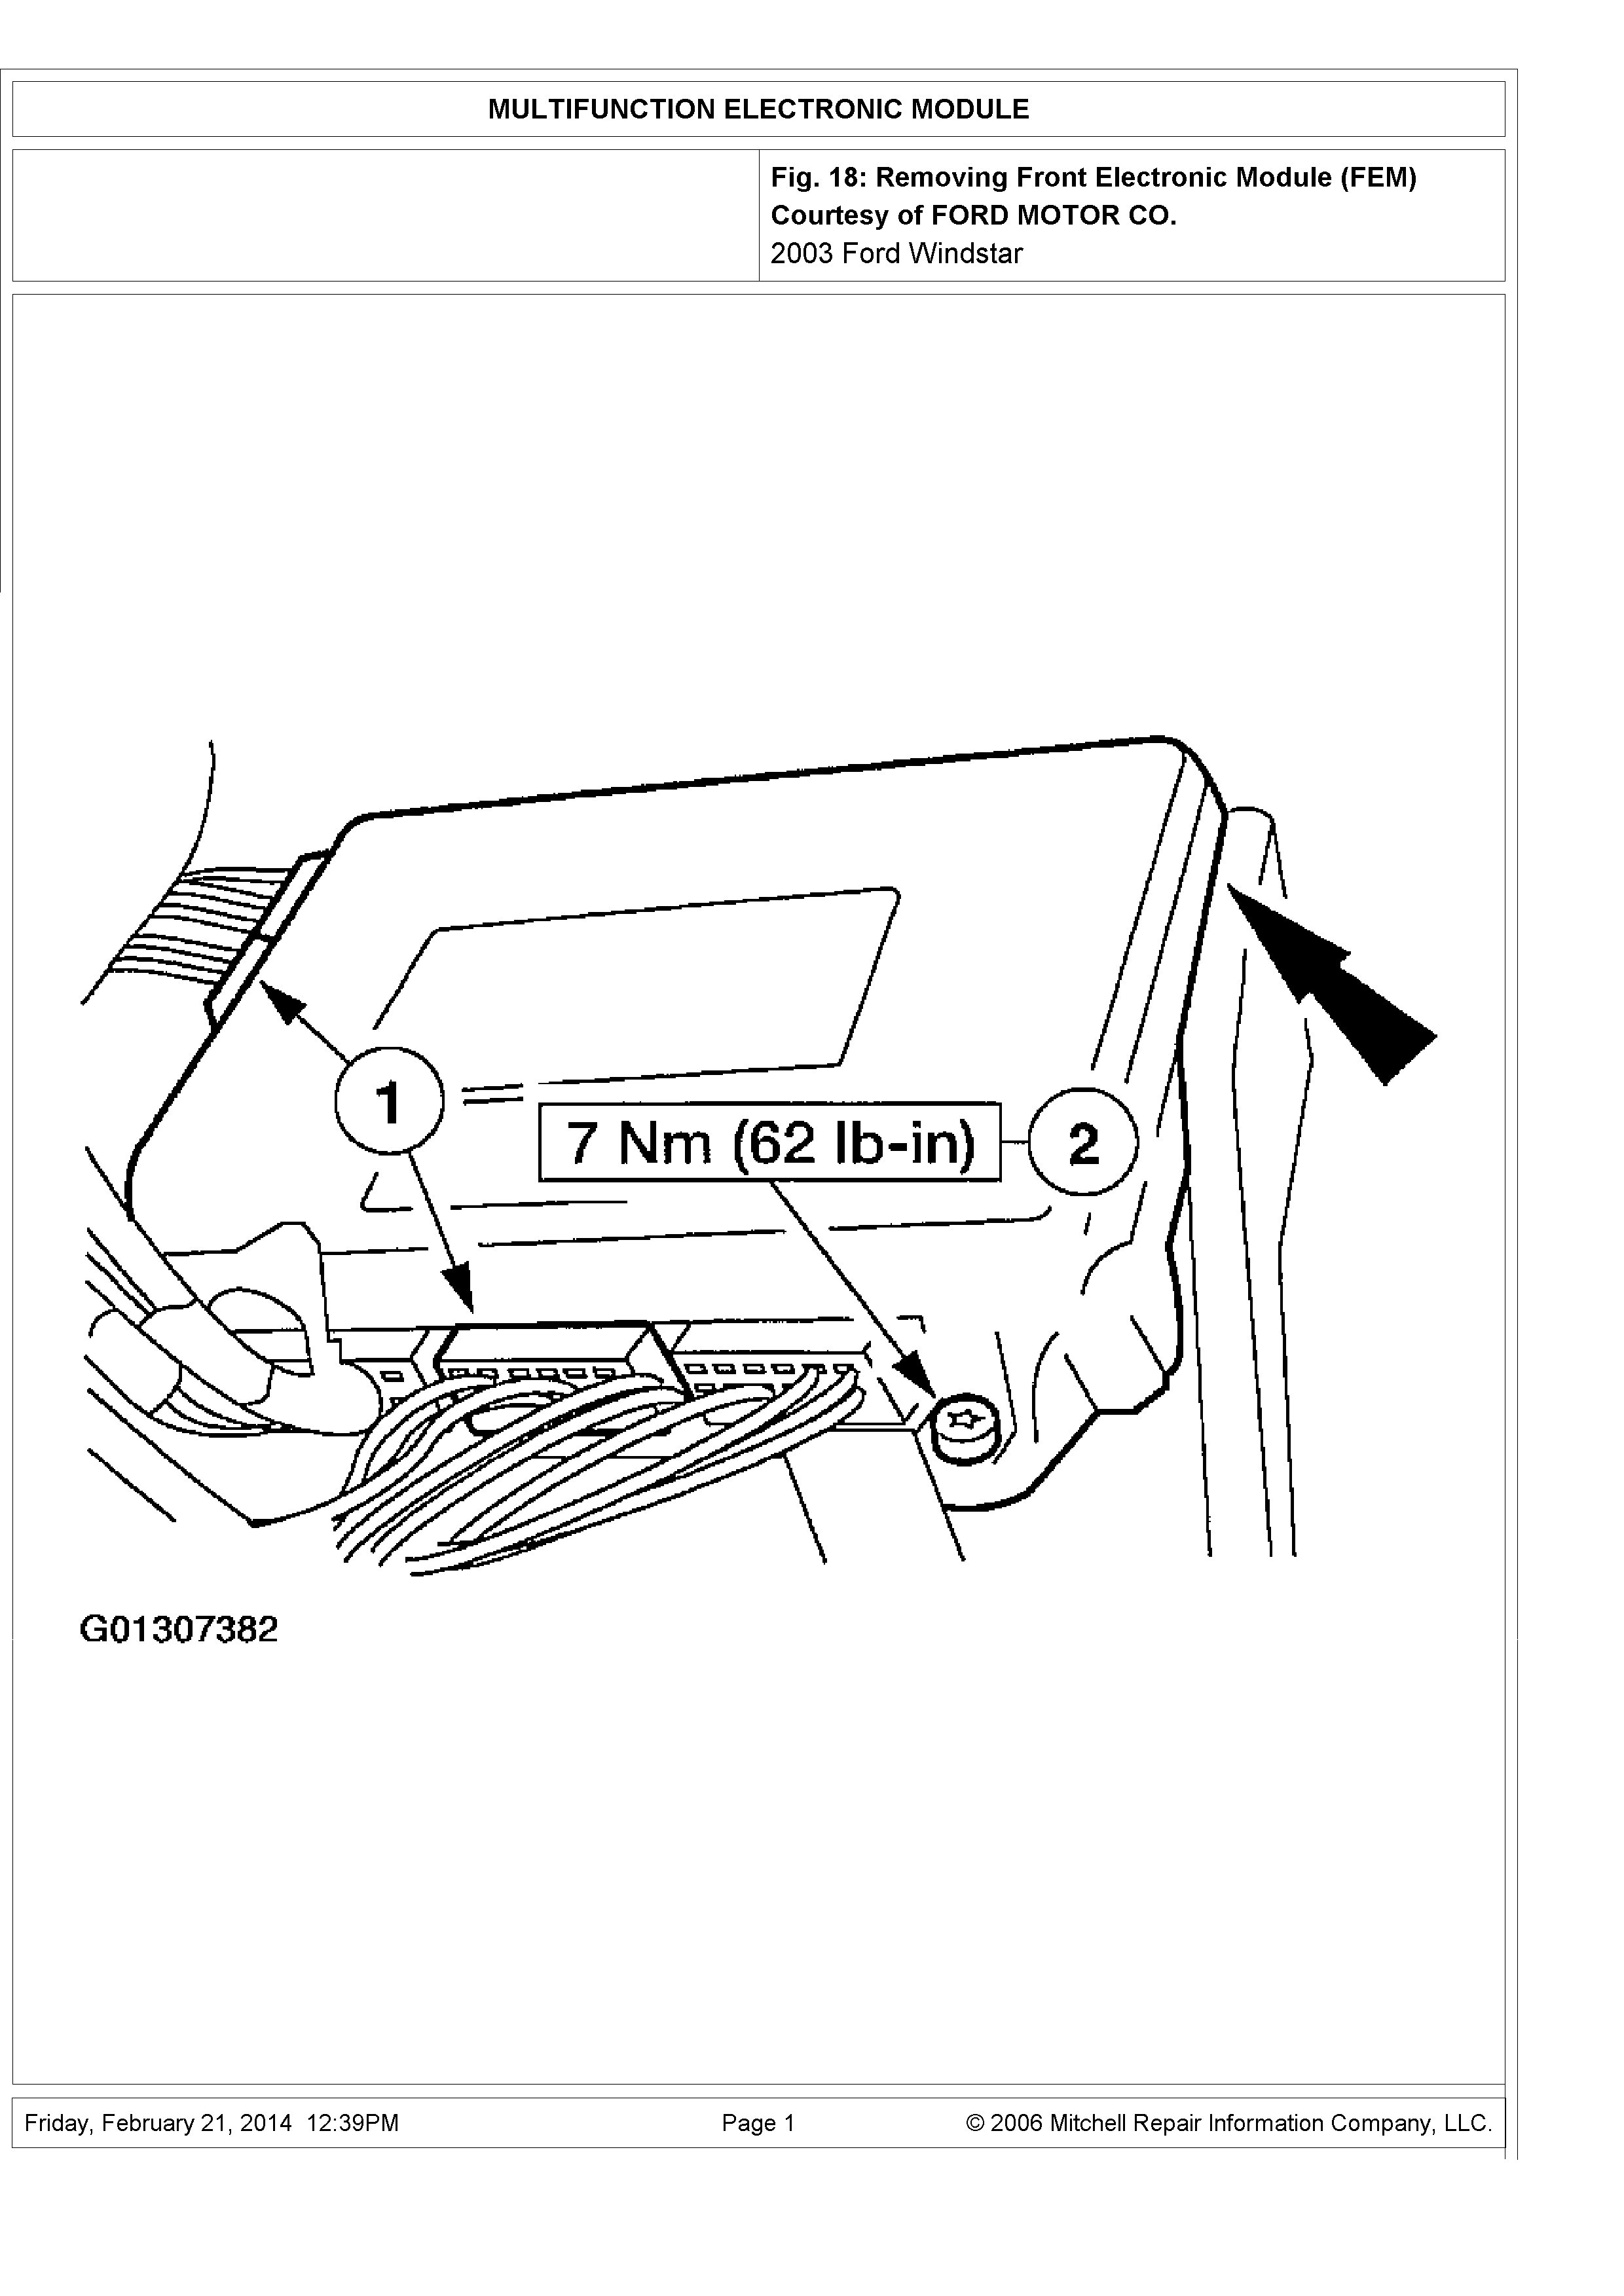 Fuse Box Diagram For 2003 Ford Windstar